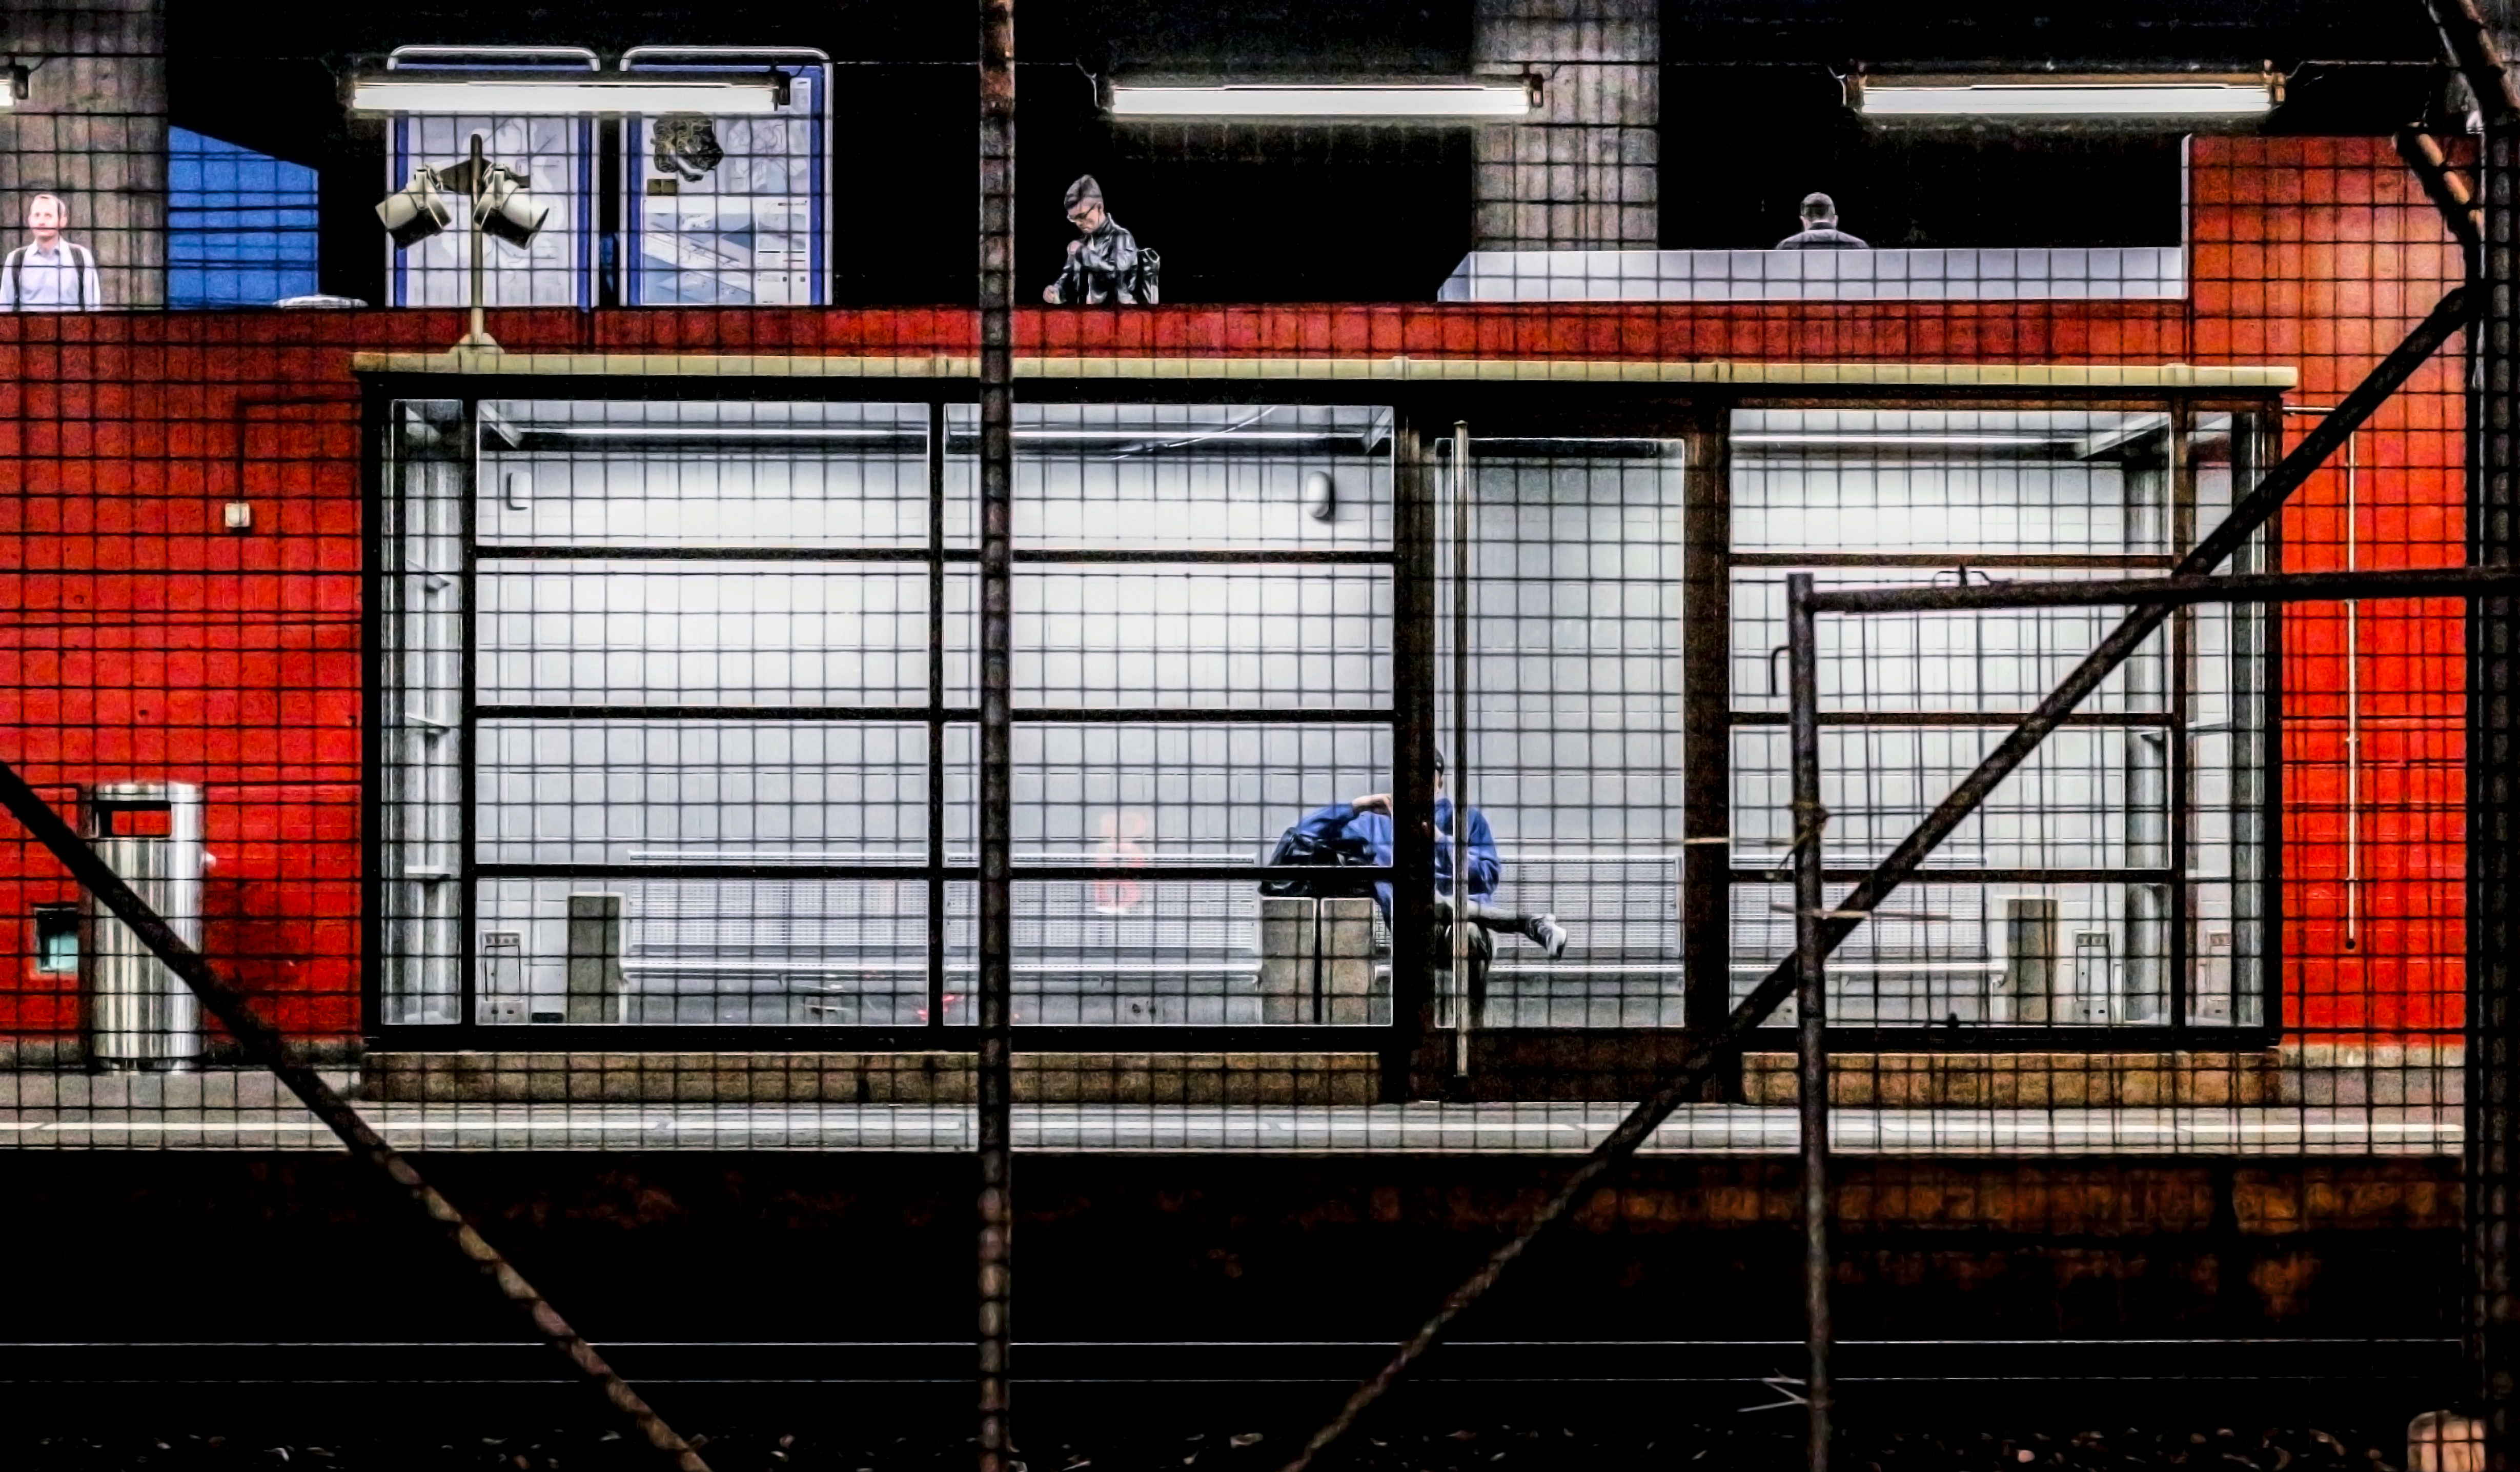 Hardbrücke_trainstations_series_waiting_